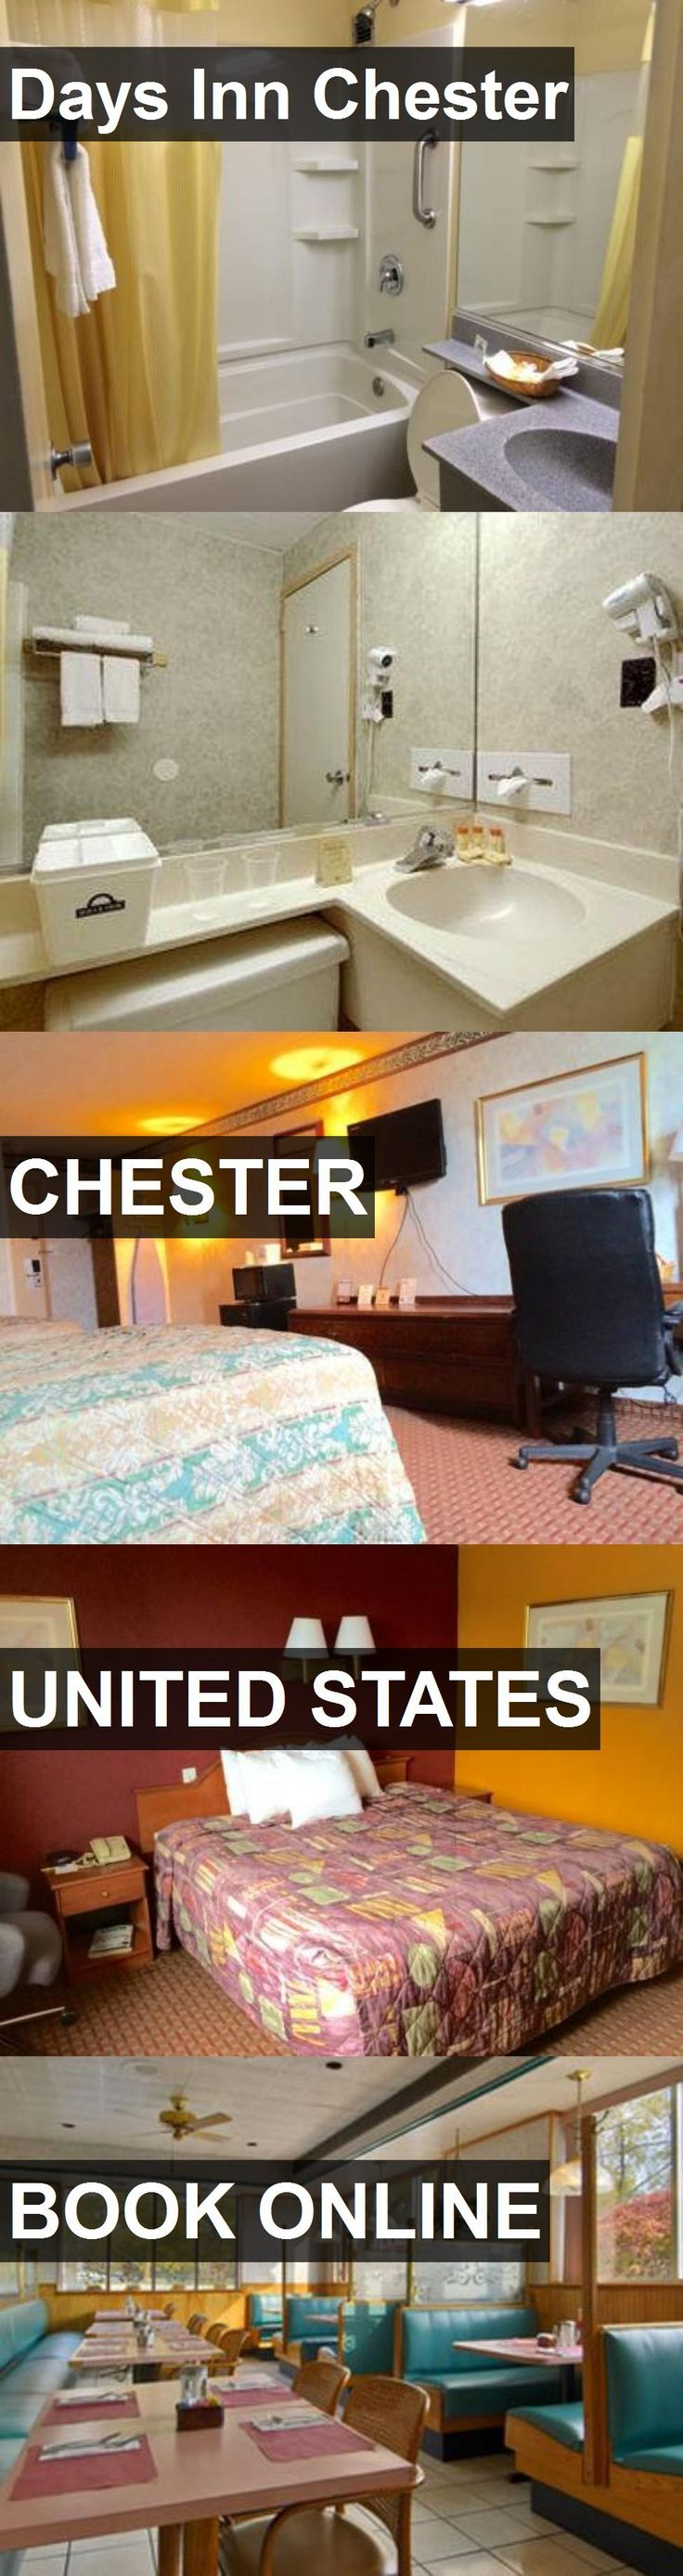 Hotel Days Inn Chester in Chester, United States. For more information, photos, reviews and best prices please follow the link. #UnitedStates #Chester #DaysInnChester #hotel #travel #vacation